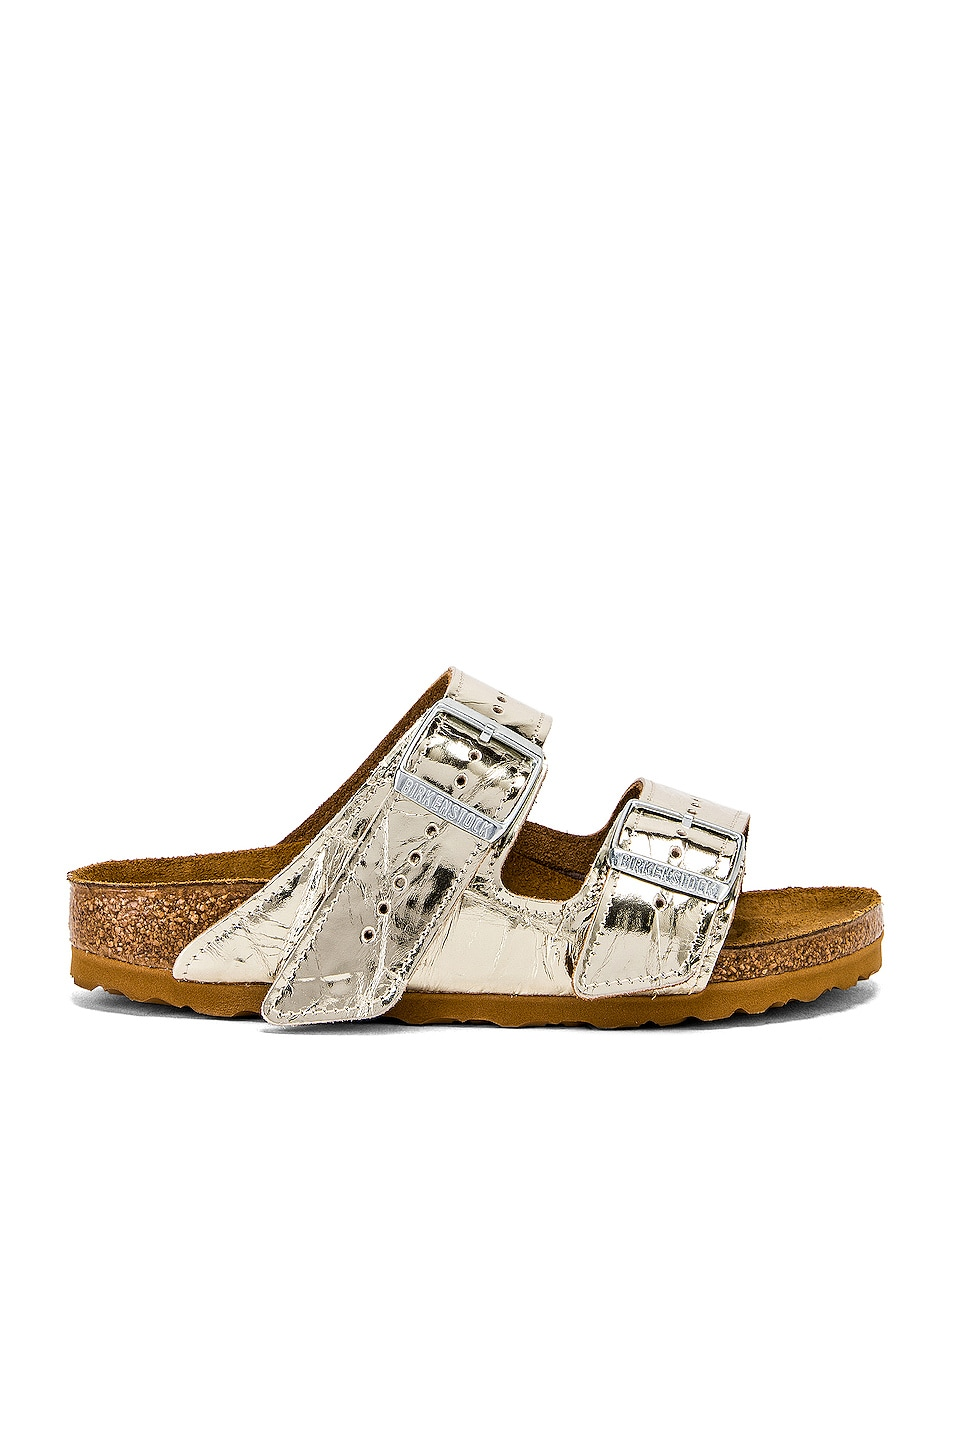 Image 1 of Rick Owens x Birkenstock Arizona Sandal in Gold